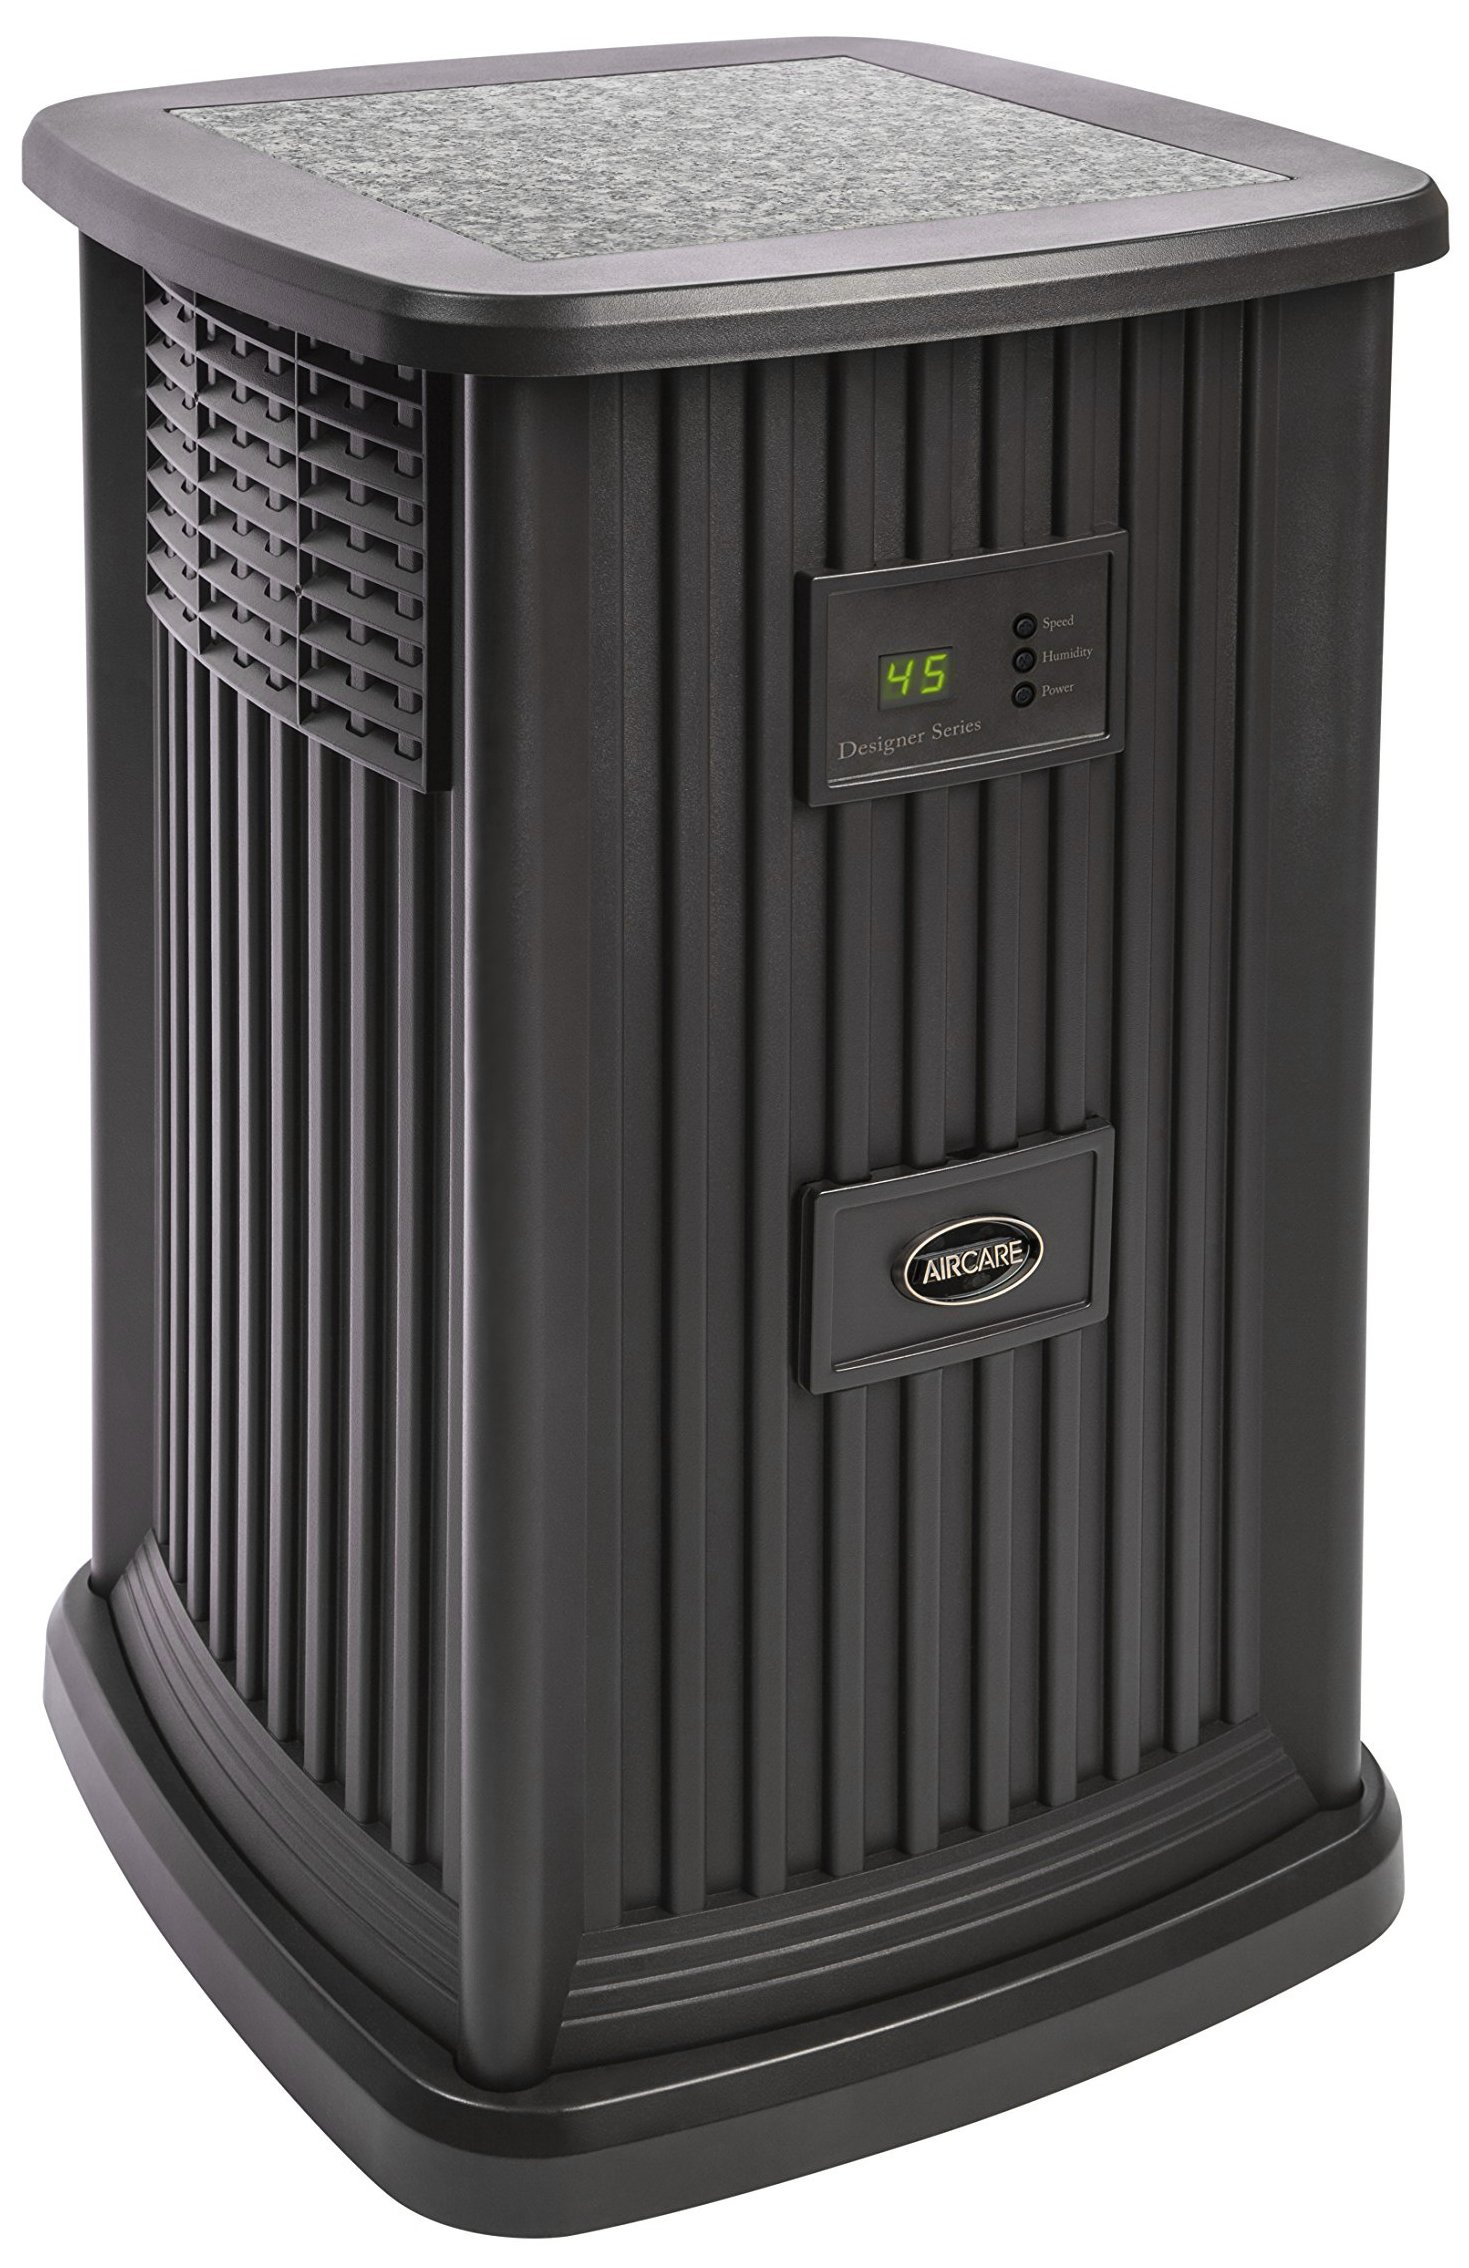 AIRCARE EP9 800 Digital Whole-House Pedestal-Style Evaporative Humidifier, Espresso by Essick Air